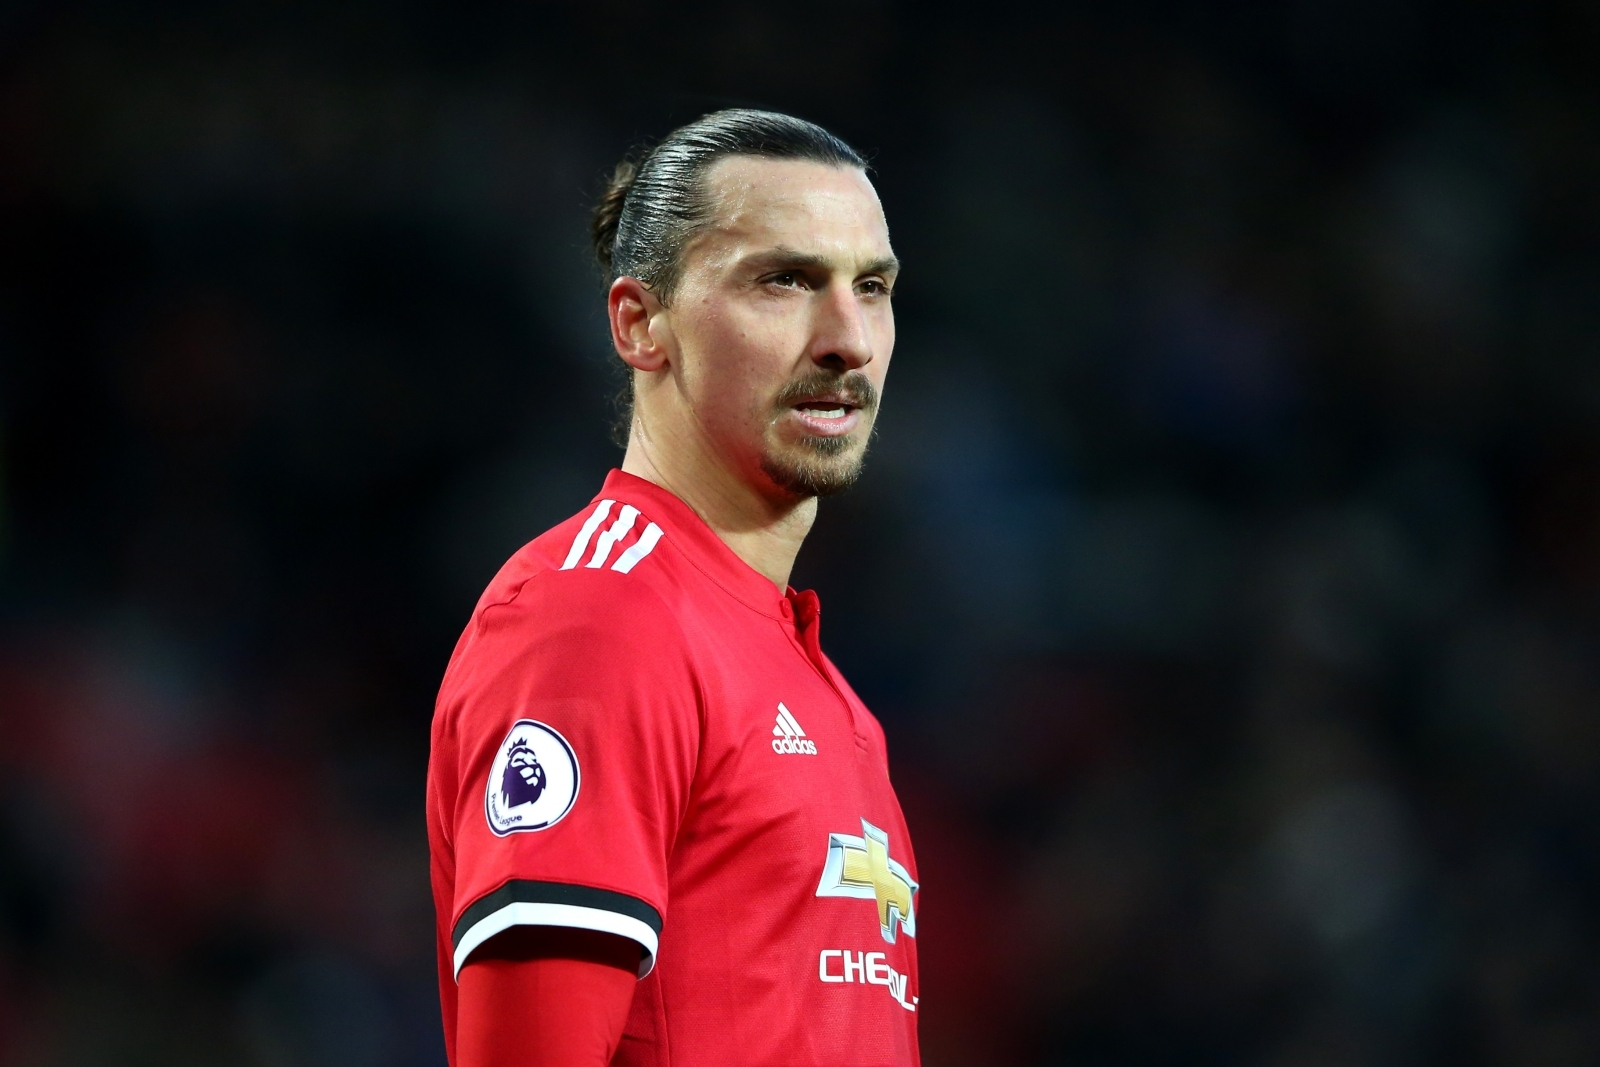 Zlatan Ibrahimovic closing in on LA Galaxy move, Jose Mourinho open to transfer